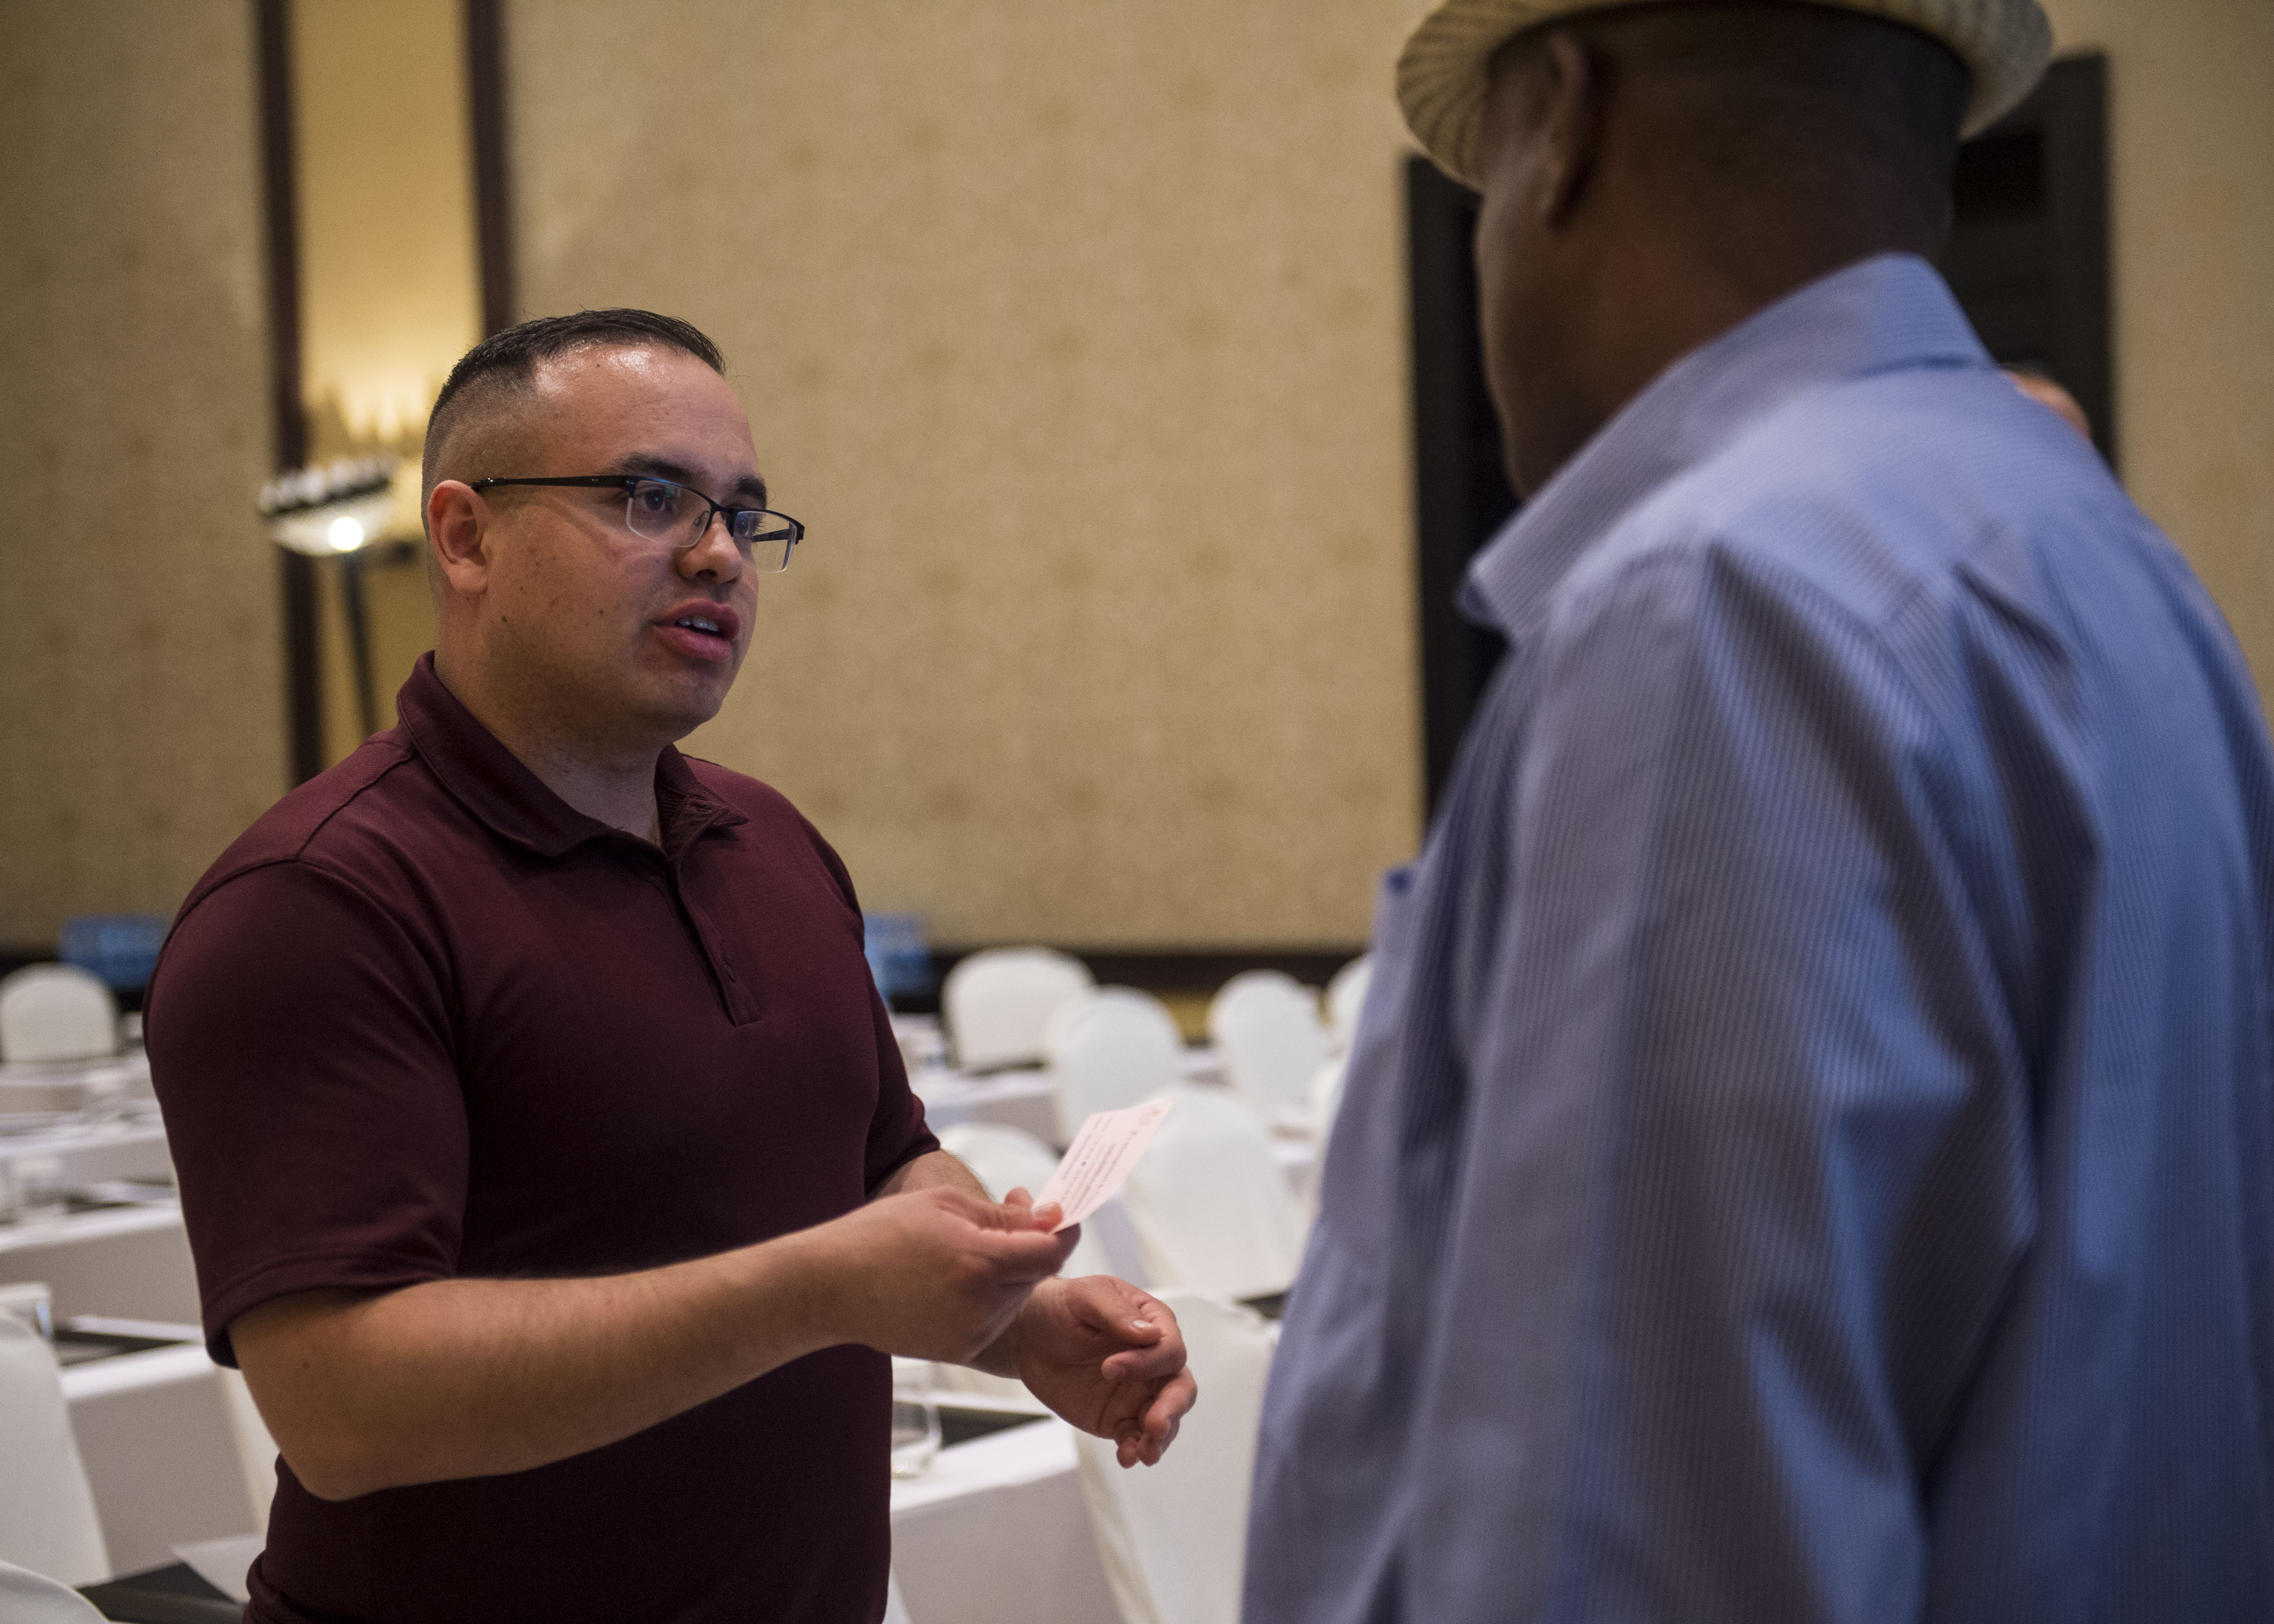 U.S. Army Staff Sgt. Uriel Ramirez, Combined Joint Task Force - Horn of Africa (CJTF-HOA) Contingency Contracting Office (CCO) contracting officer, talks with a representative from a local business during a Djibouti Economic Outreach Symposium in Ilon Du Heron, Djibouti, Dec. 19, 2017. Hosted by the CJTF-HOA CCO and commonly referred to as Vendor Day, the symposium is designed to get local business owners together and make them aware of the opportunities and process of doing business as a vendor with the U.S. government. (U.S. Air Force photo by Staff Sgt. Timothy Moore)